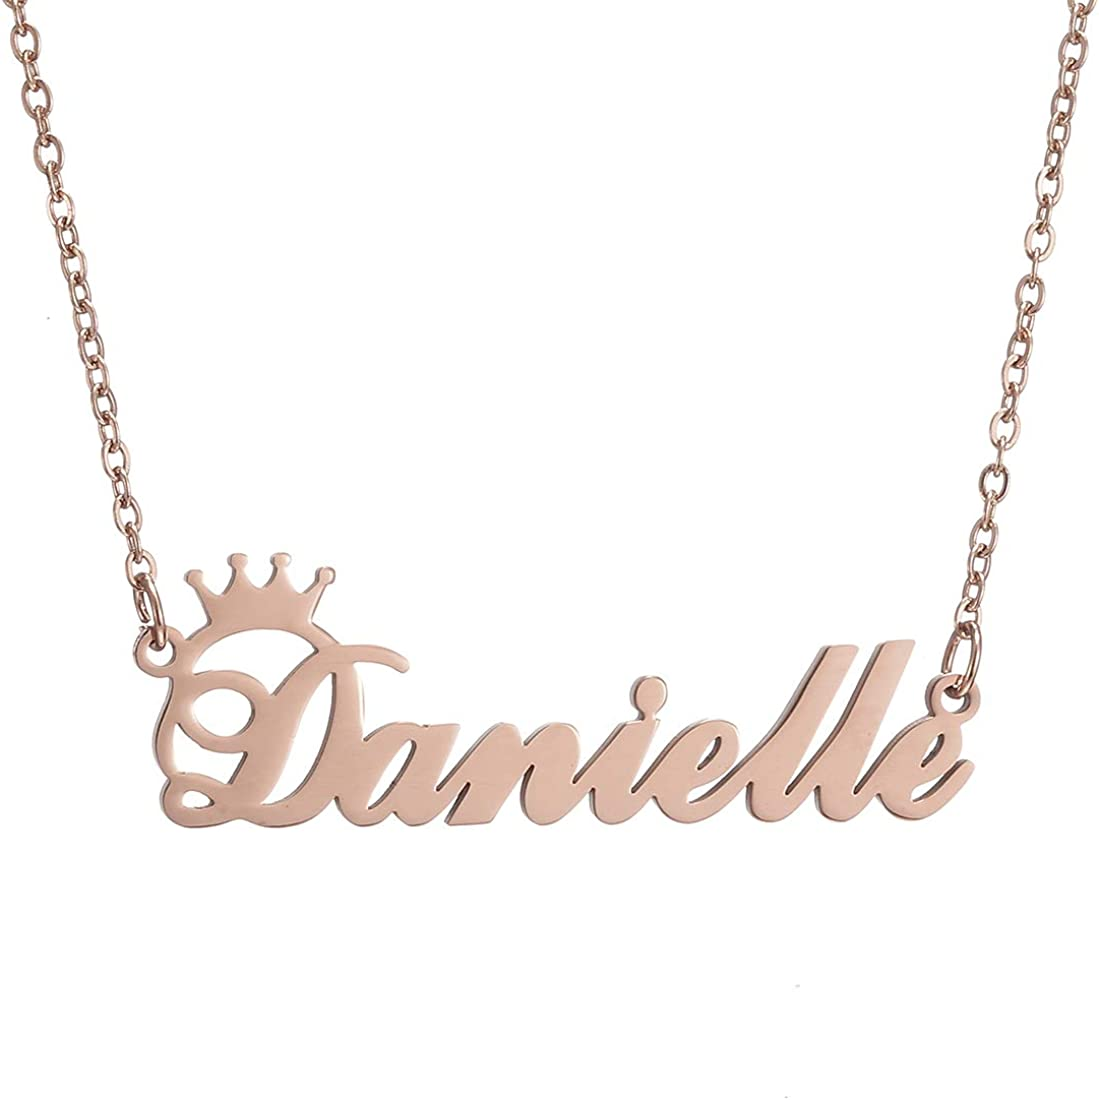 SKQIR Personalized Name Necklace Rose Gold Custom, Customized Chains Name Pendants Necklaces Personalized Name Necklace with Crown for Women Girl Gift